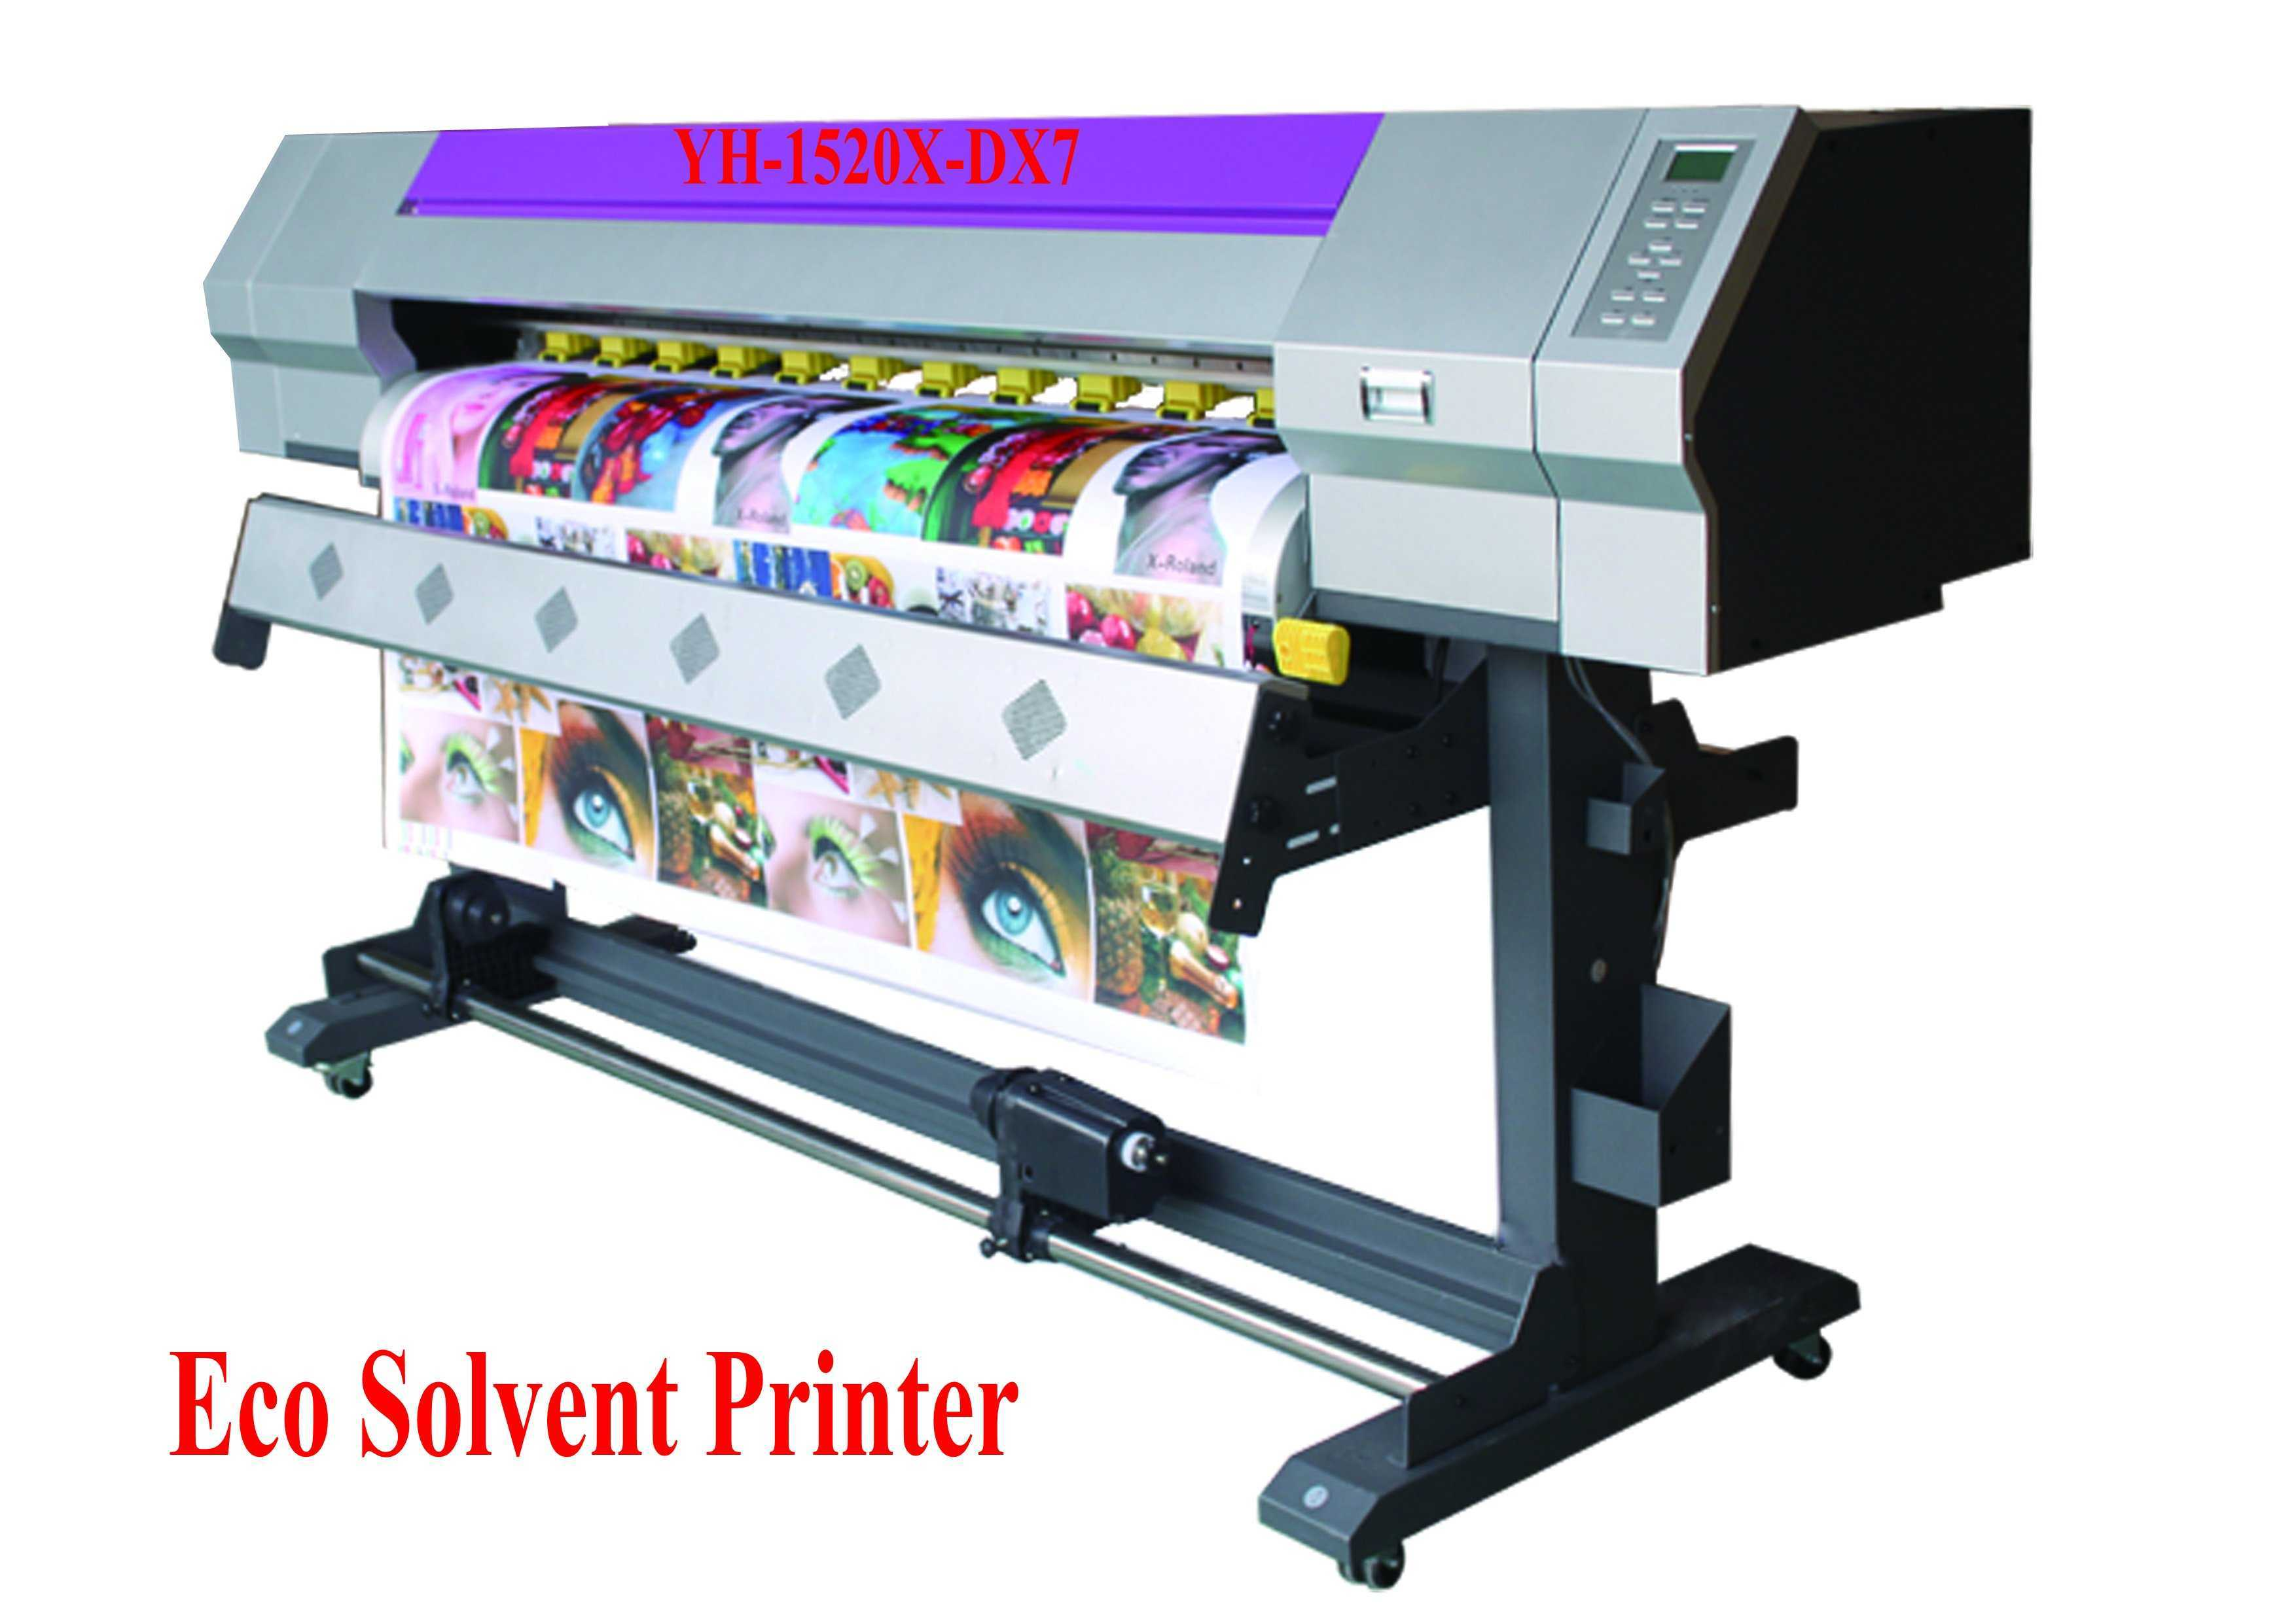 Image result for solvent printer vs eco solvent